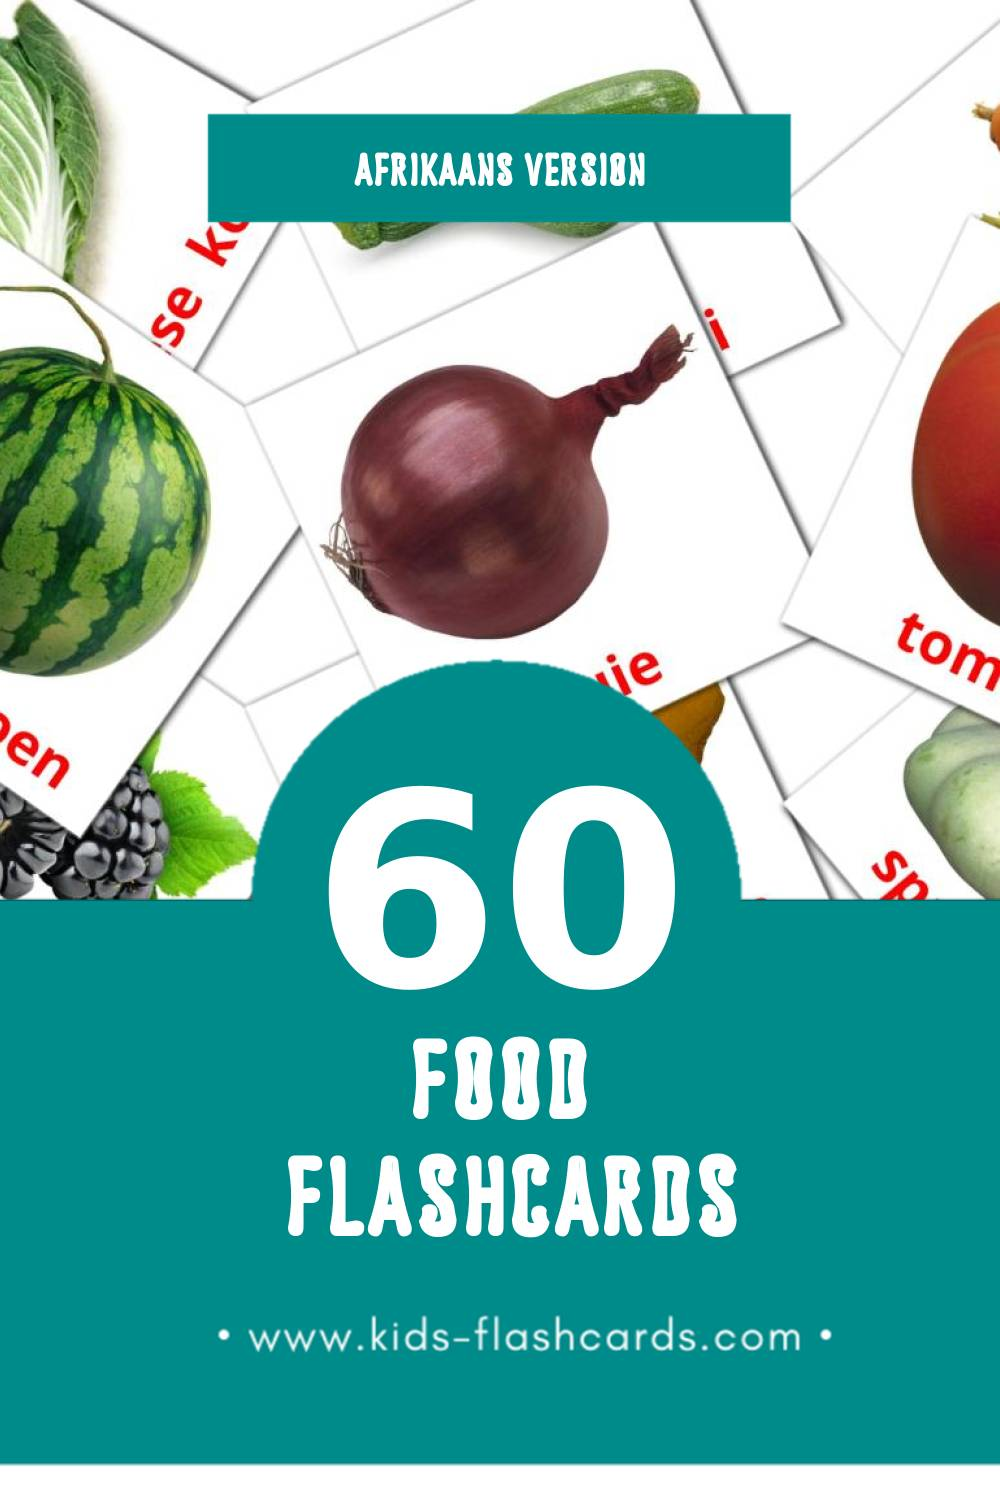 Visual Kos Flashcards for Toddlers (60 cards in Afrikaans)